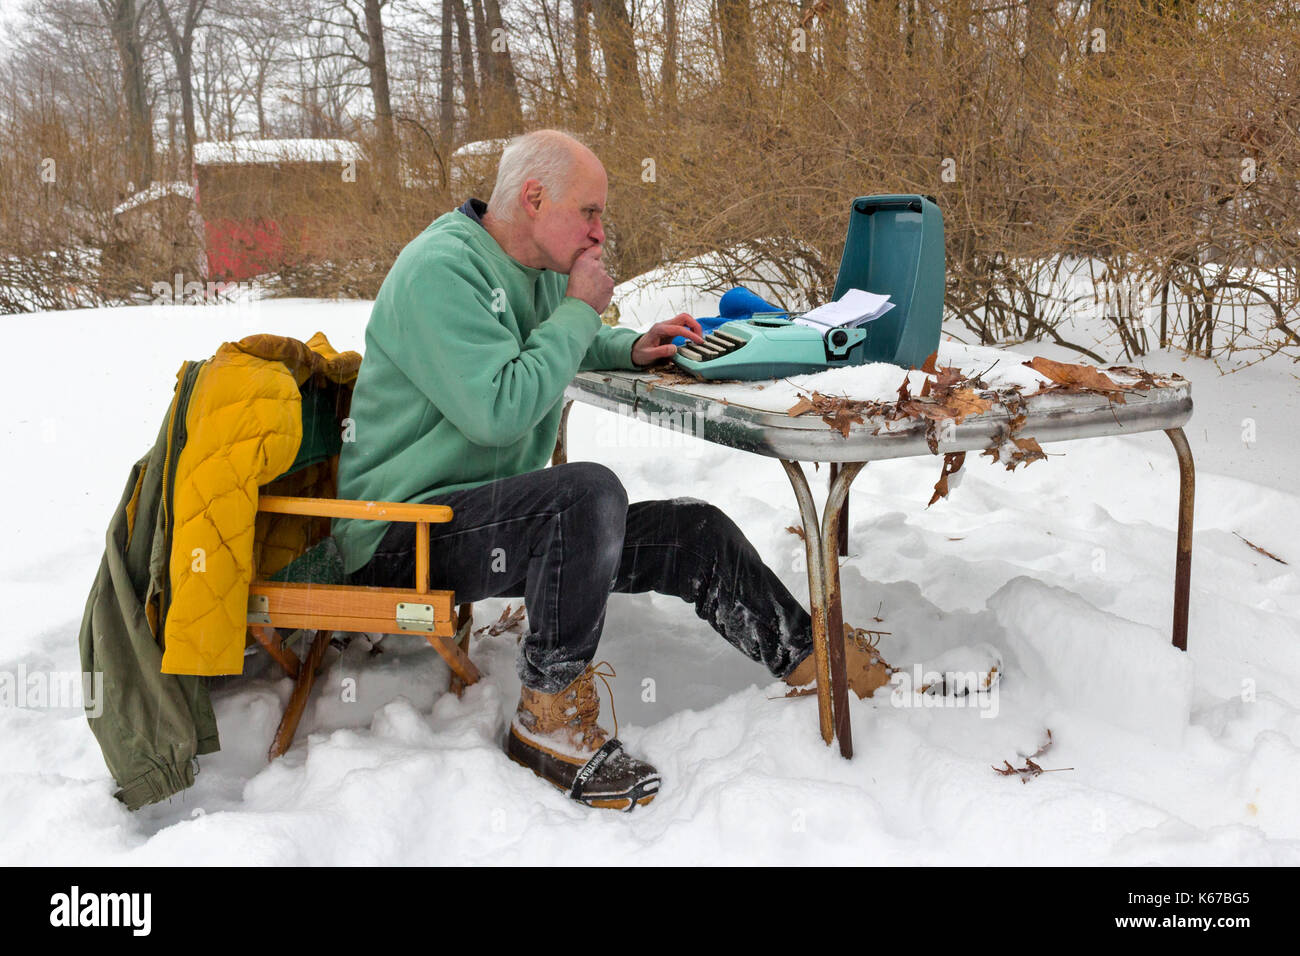 A writer sitting at a table outside during a snowstorm and typing on a typewriter. - Stock Image